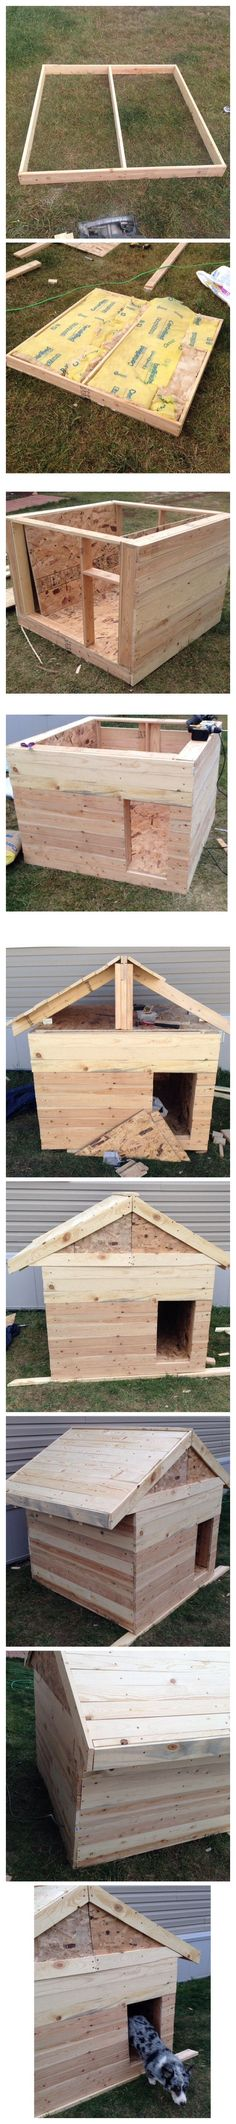 Dog house diy - Building a heated and insulated dog house with minimal tools a ruler, marker, circular saw, drill and hammer Insulated Dog House, Heated Dog House, Dog House Plans, Dyi Dog House, Pallet Dog House, Build A Dog House, Duck House, Cabin Plans, Dog Runs